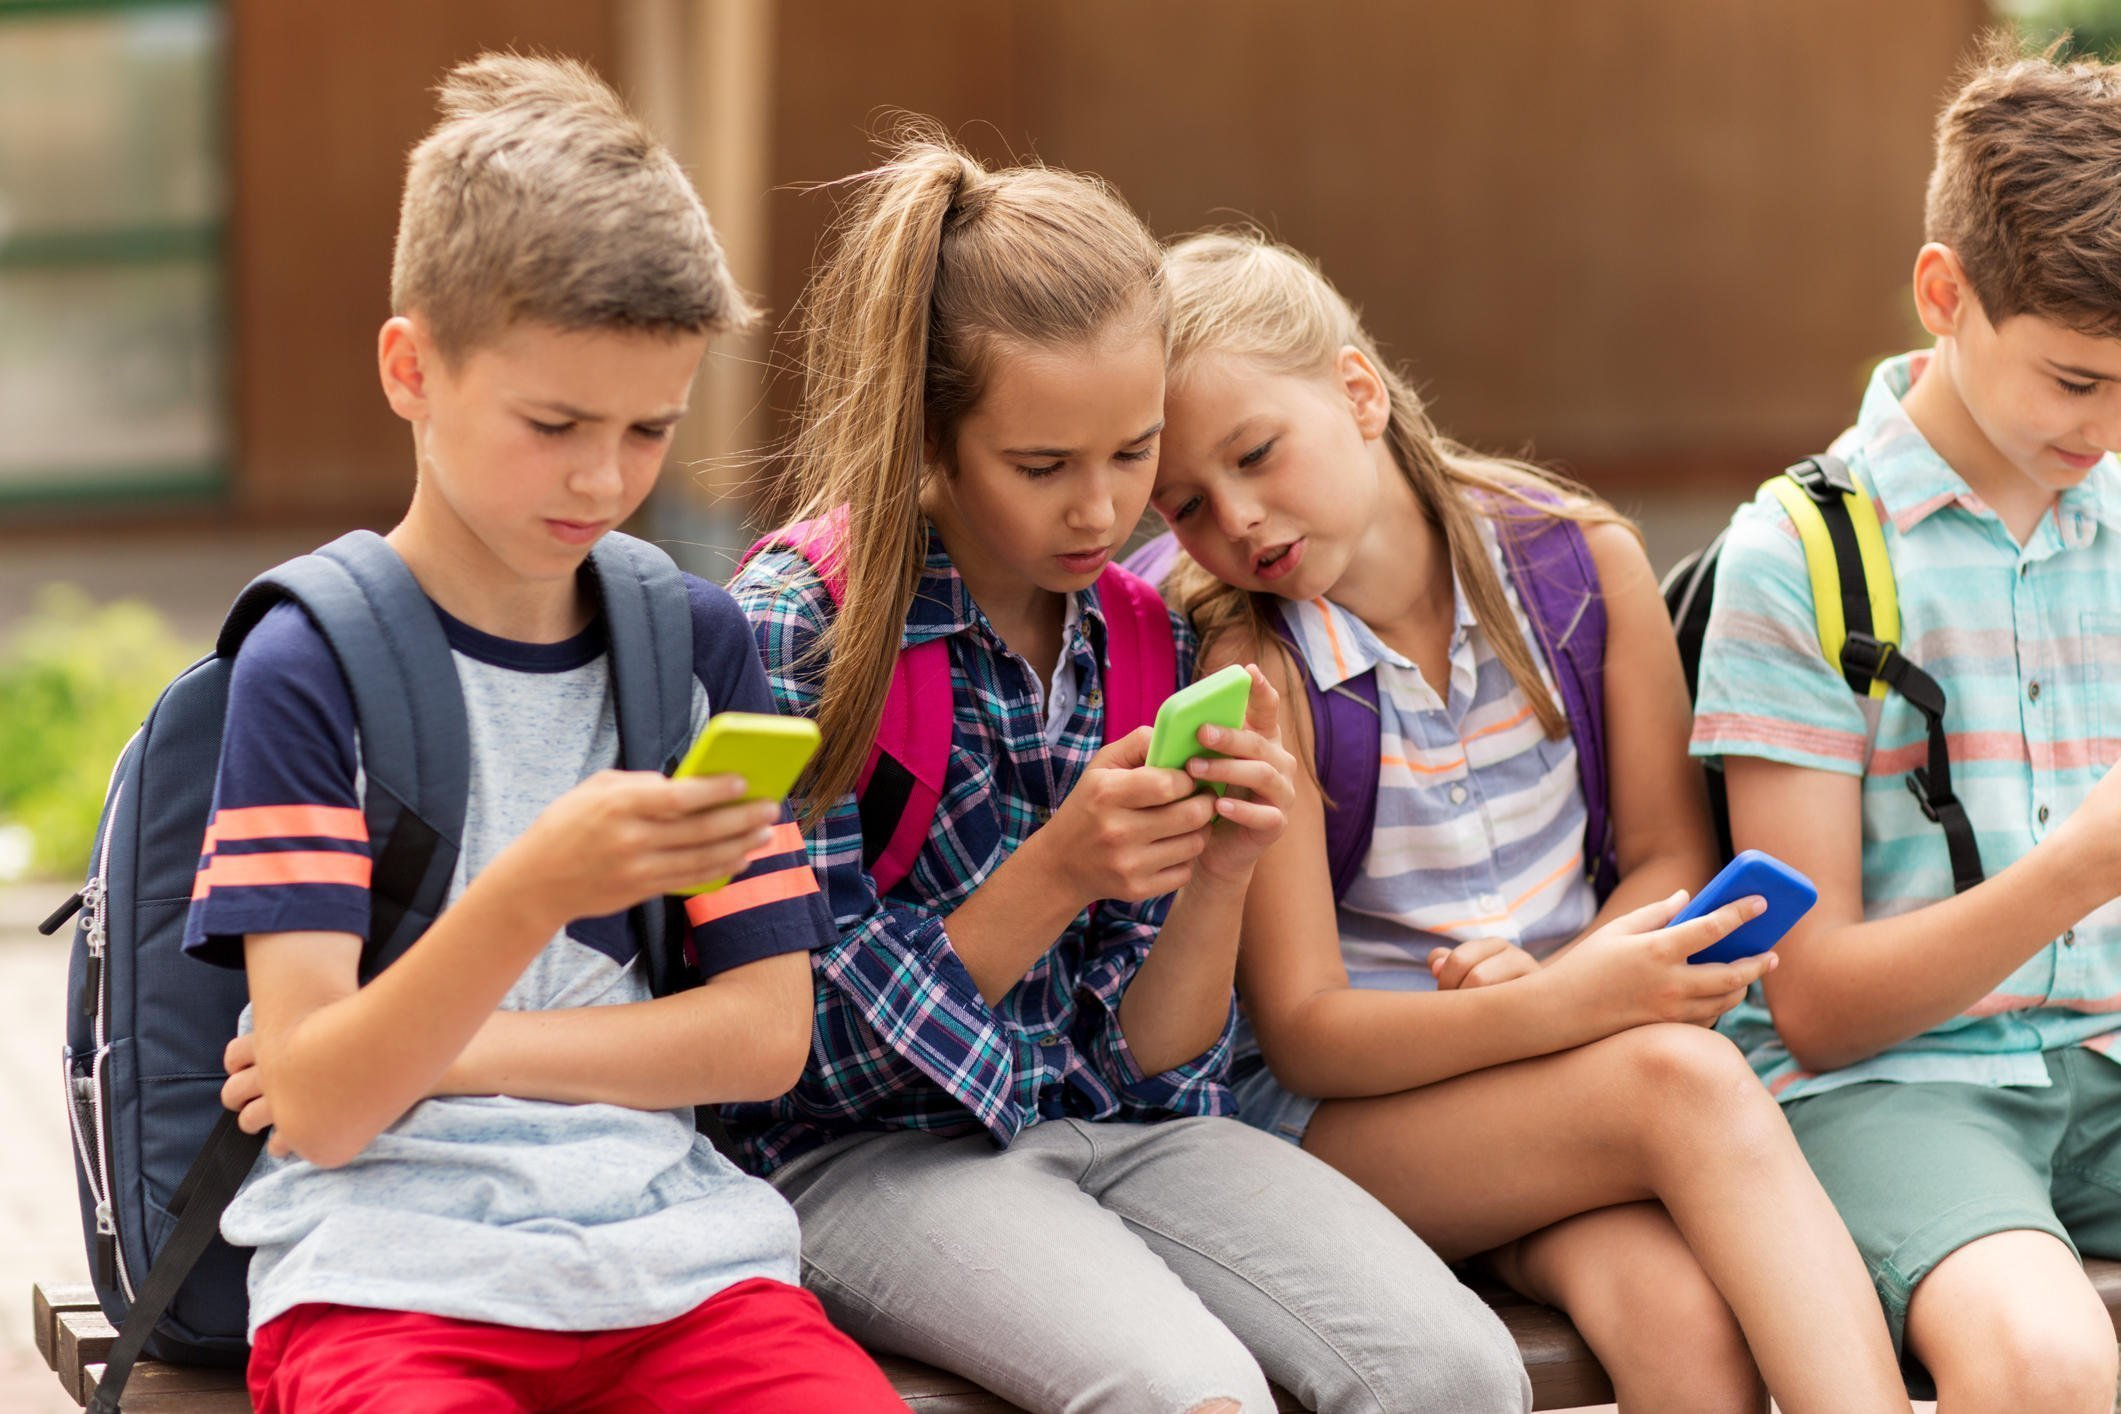 Yet Another Reason for Your Kids to Unplug? Health Risks from Cellphone Radiation